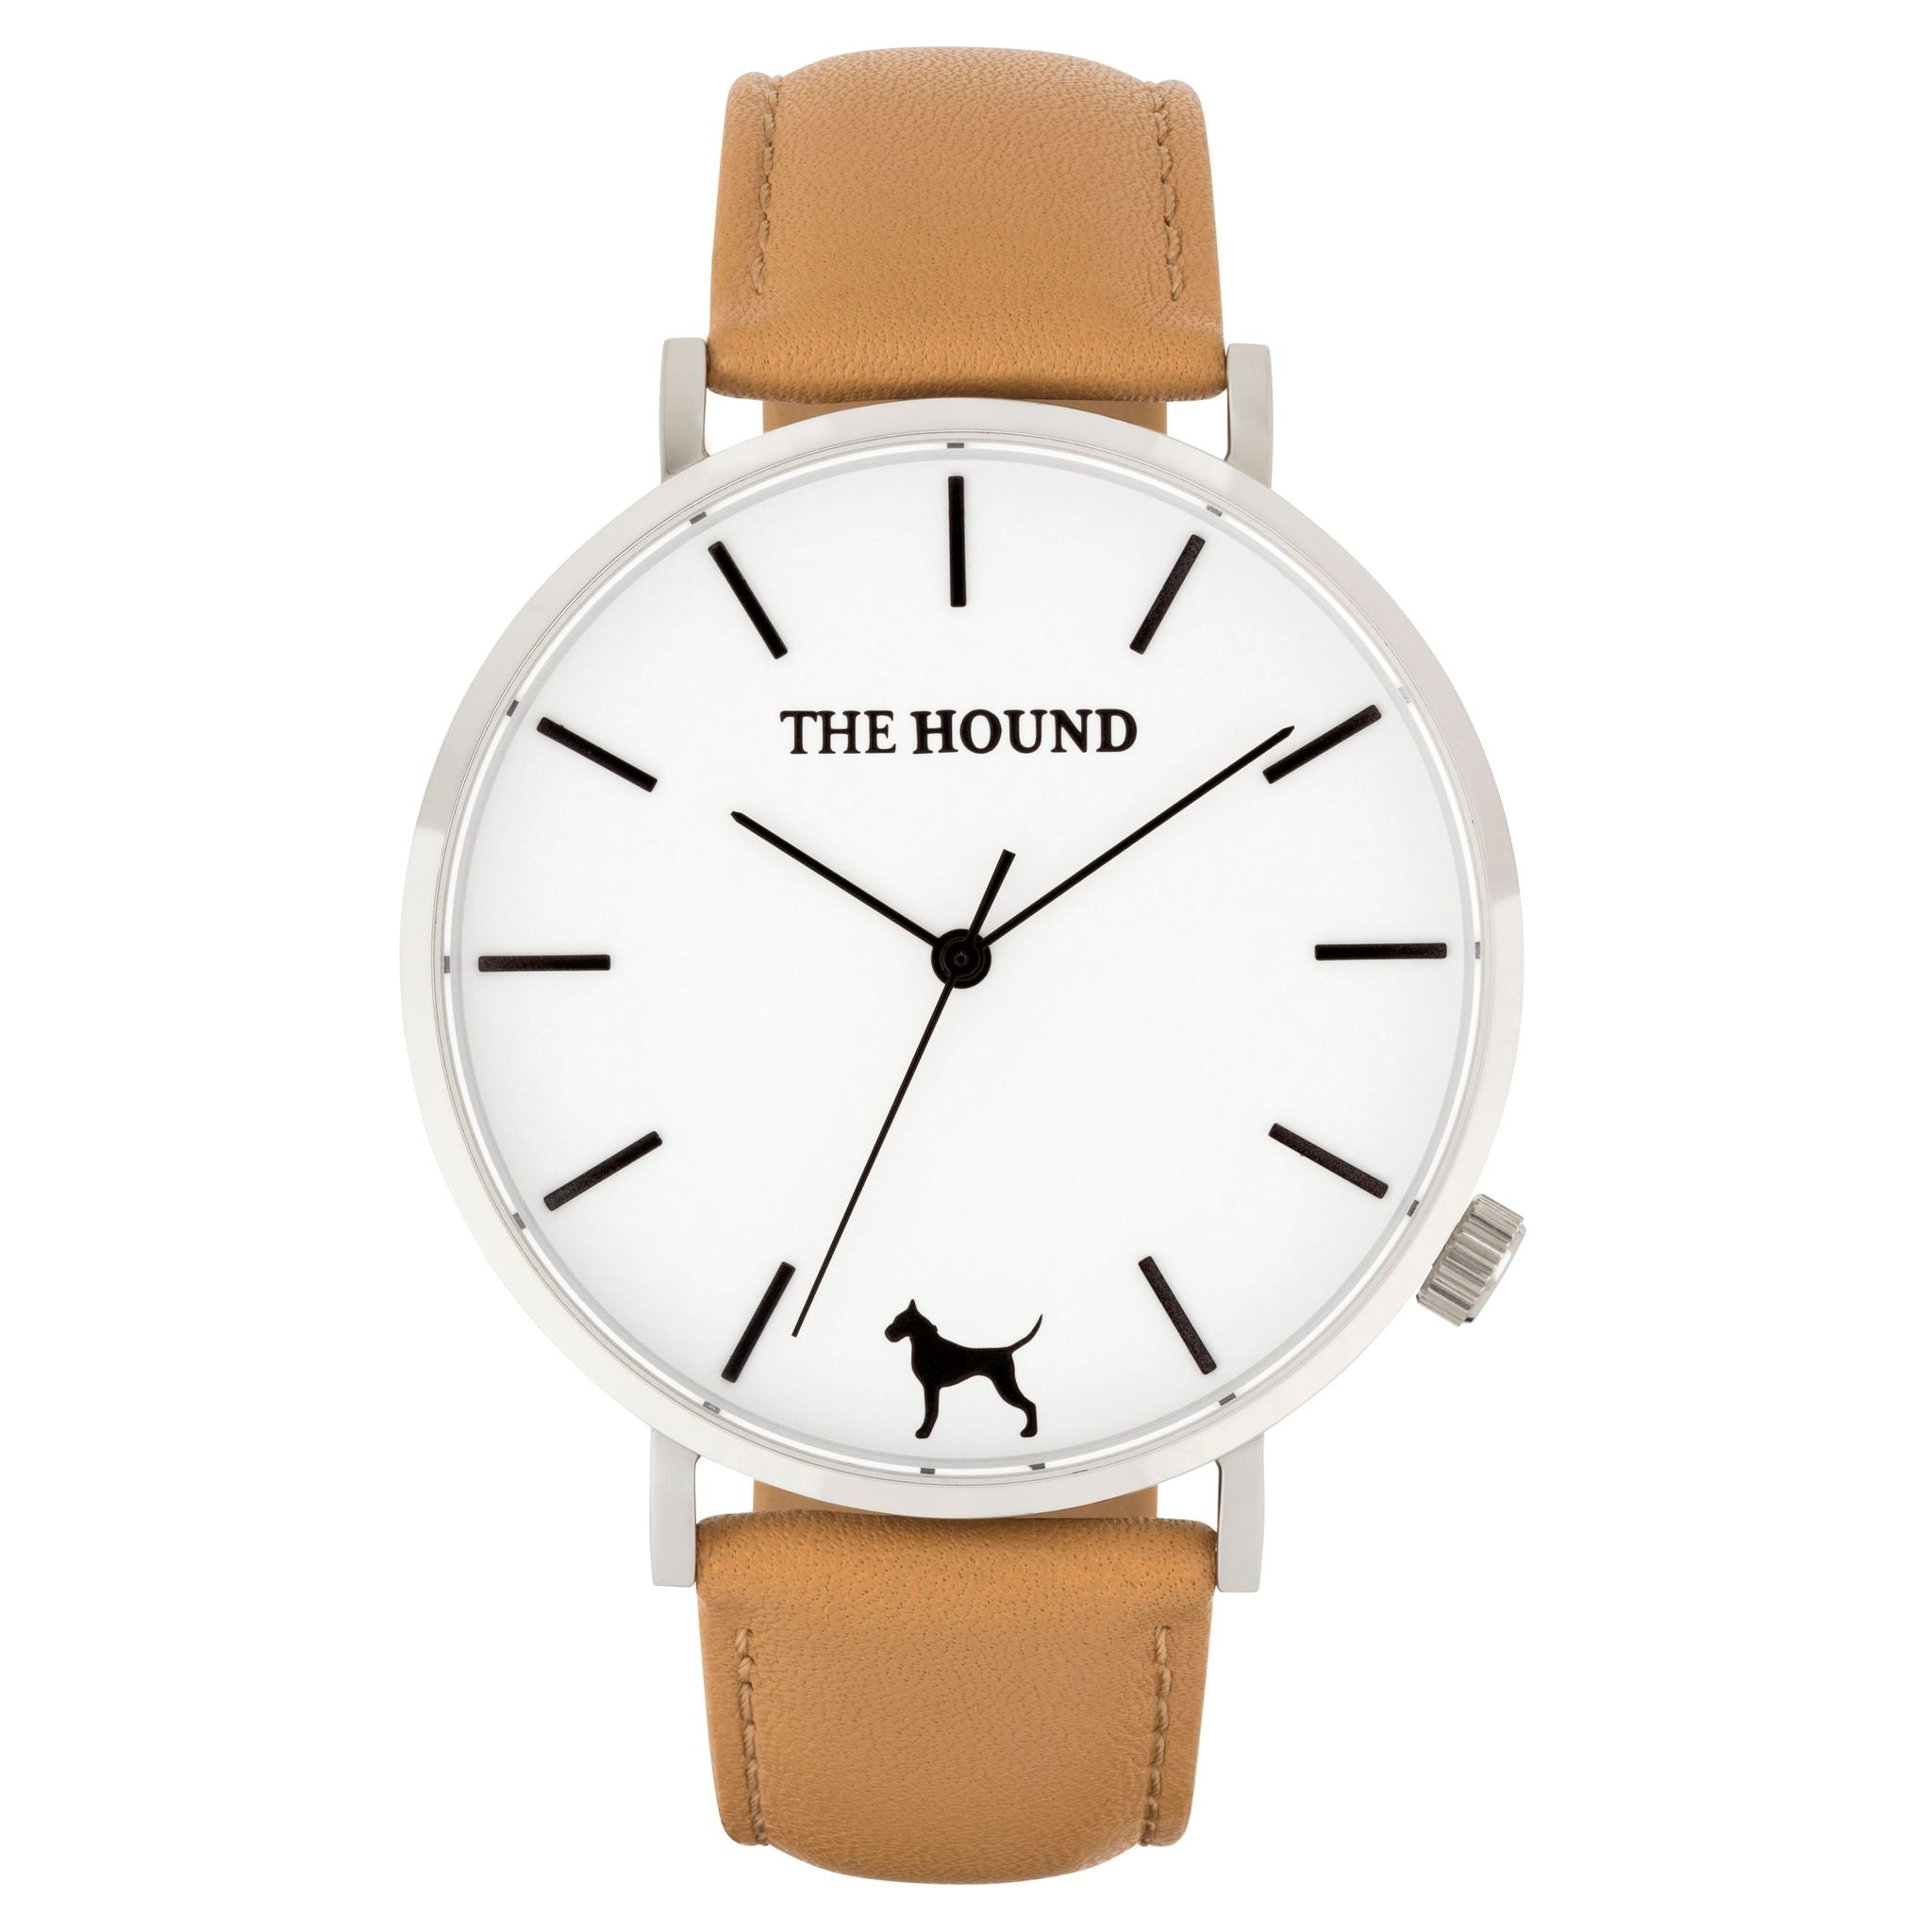 Silver & white face watch with camel leather